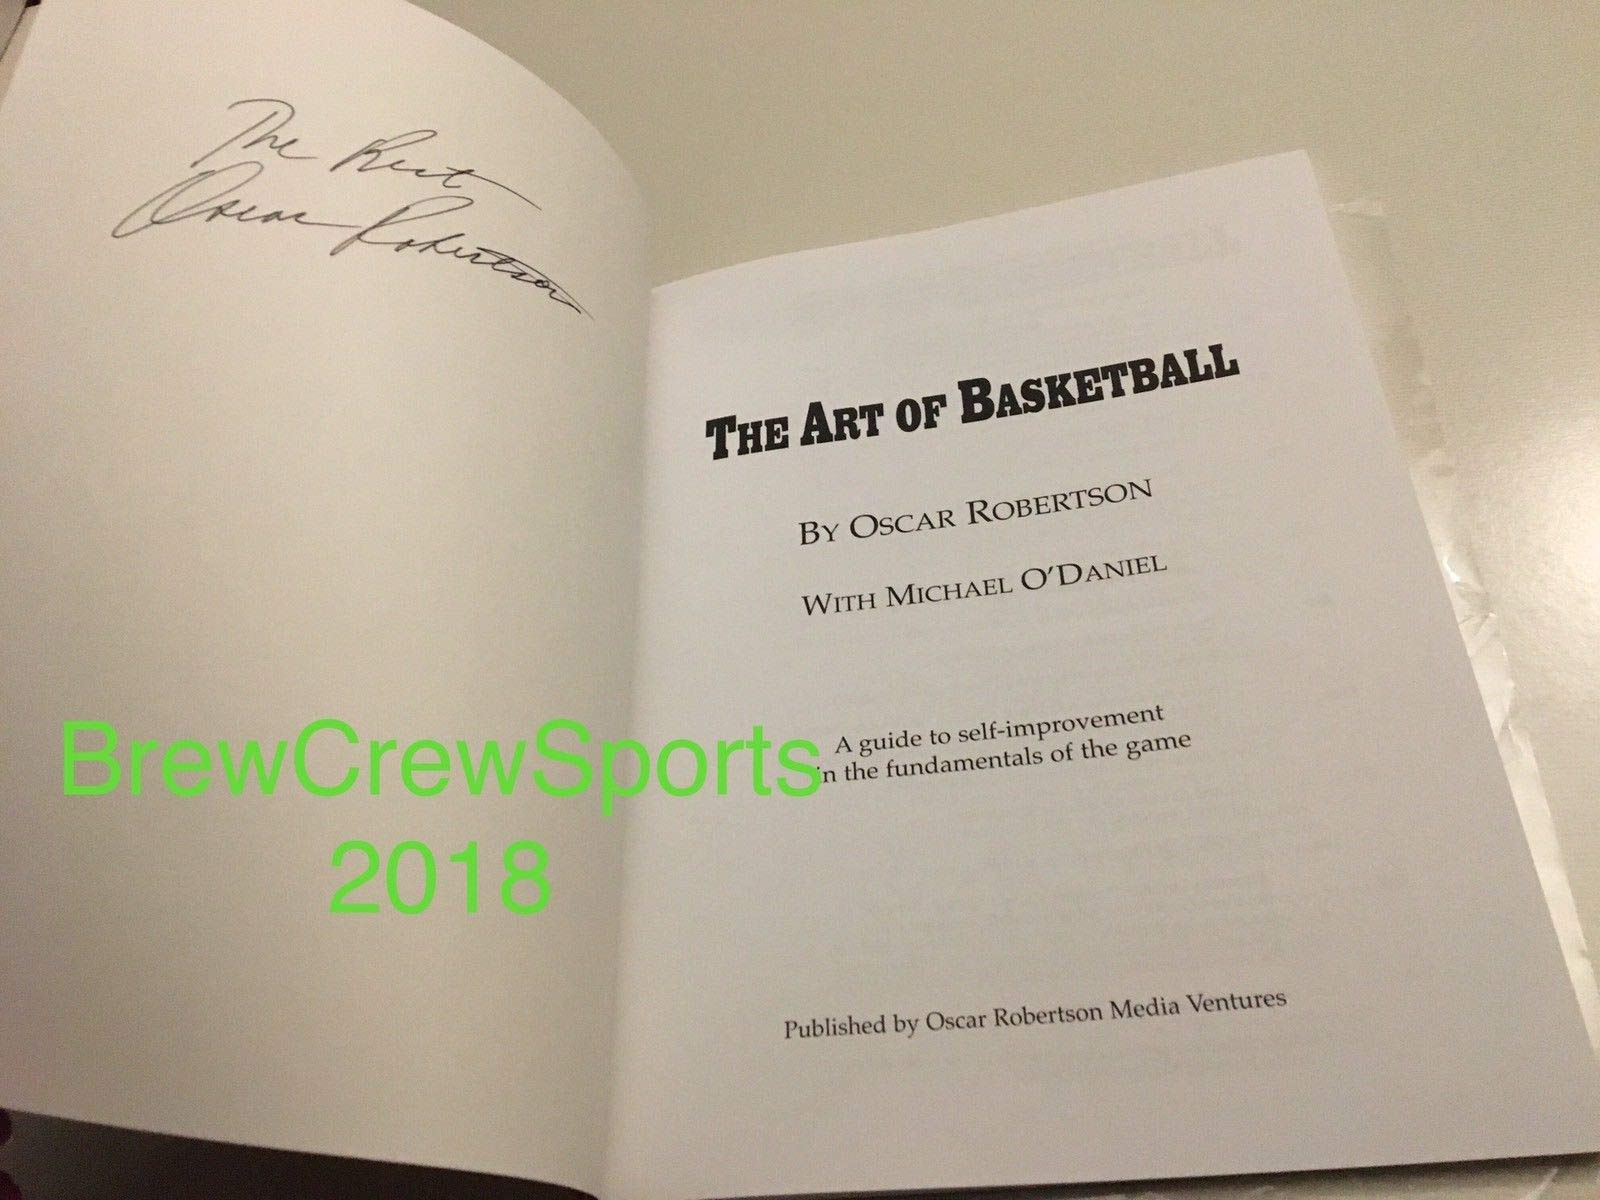 Oscar Robertson Autograph Autographed Signed The Art Of Basketball Book Beckett Coa NBA Hof